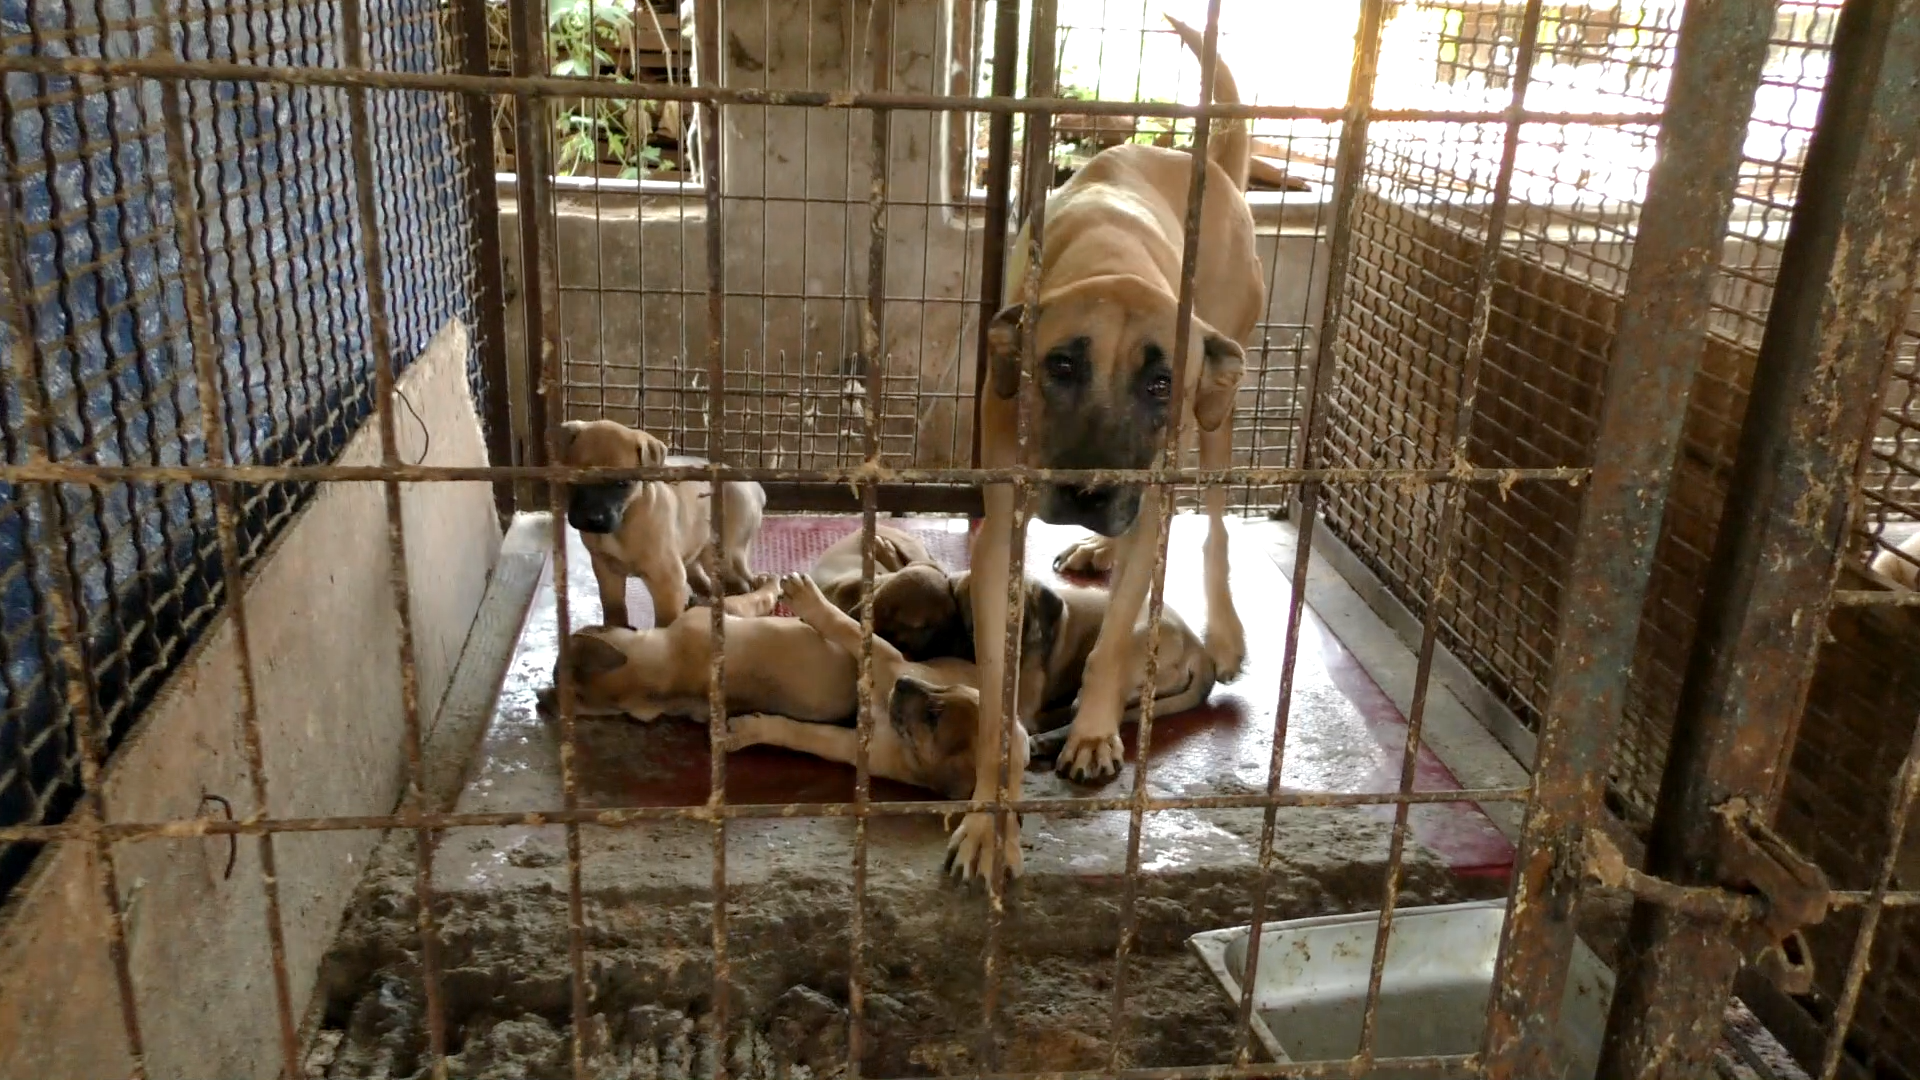 Mayor Julie Pickering of The Royal Borough of Kingston upon Thames, London: Tell Friendship City, Gwanak-gu, Seoul, South Korea, That We're Opposed to the Torture and Consumption of Dogs and Cats.